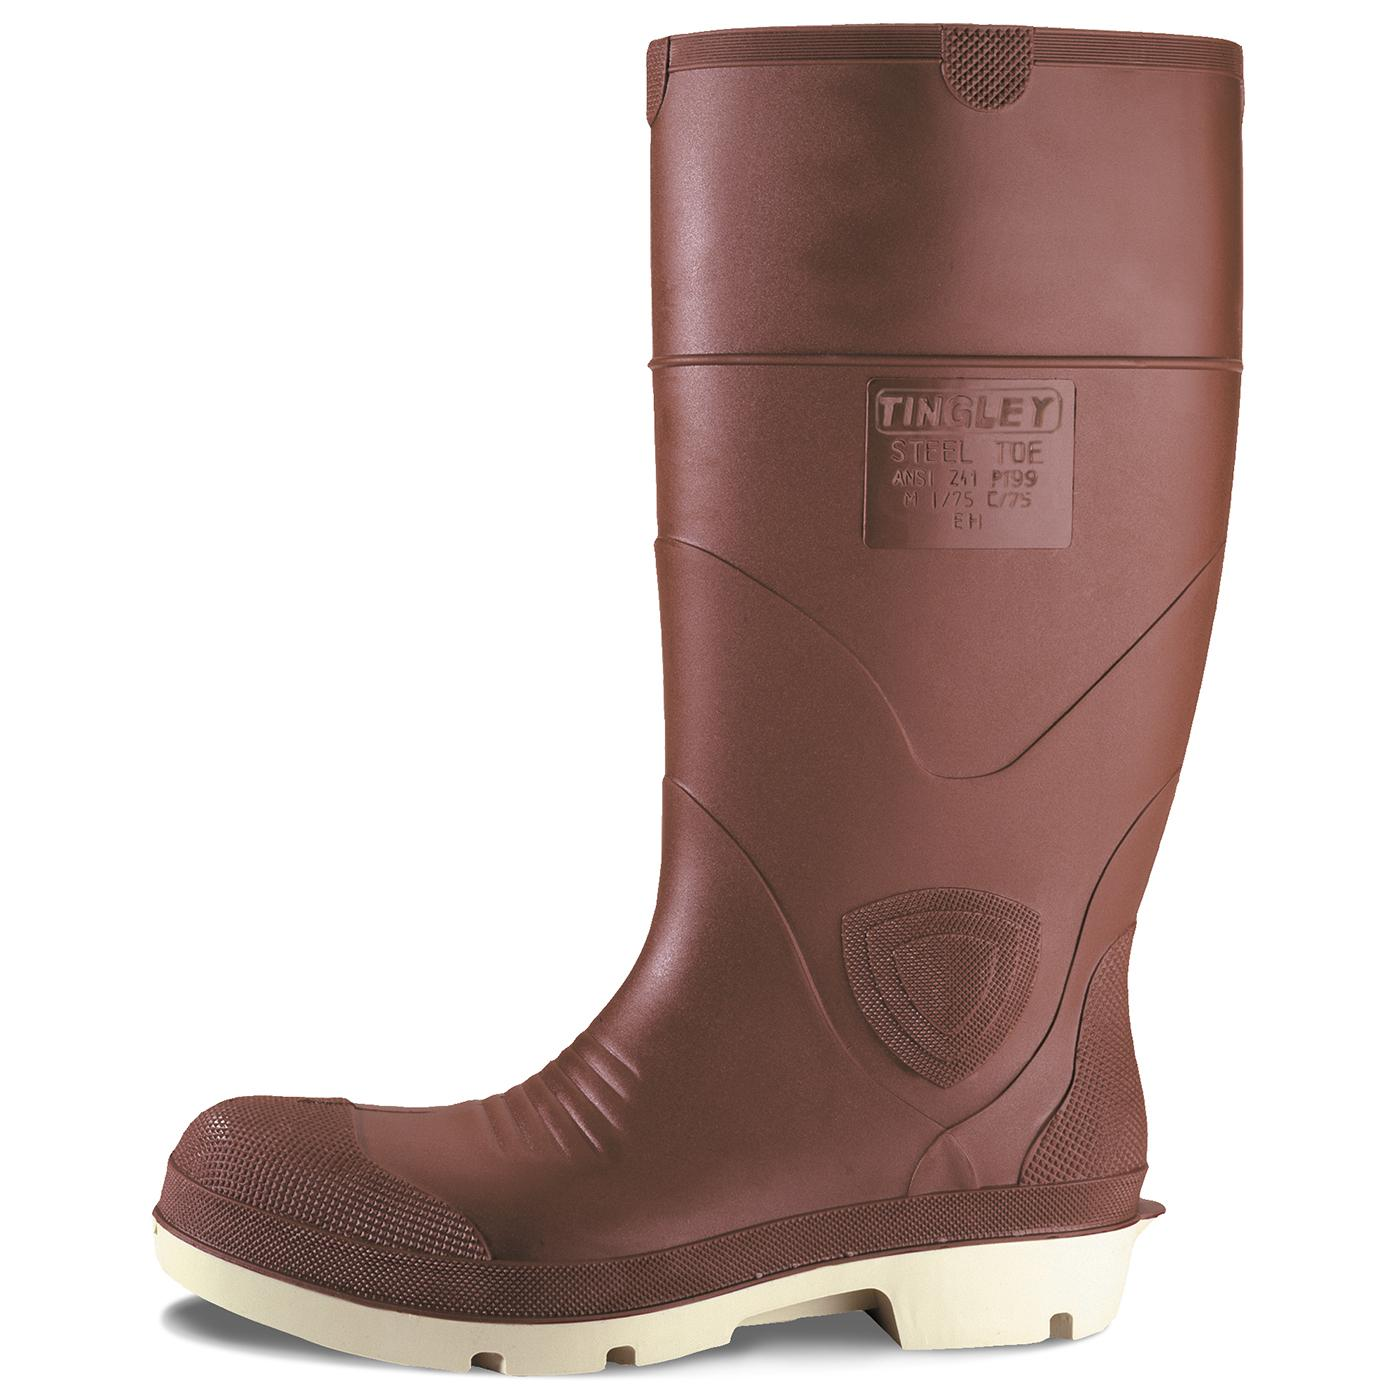 Tingley Premier Steel Toe Safety Loc Knee Boot 94245